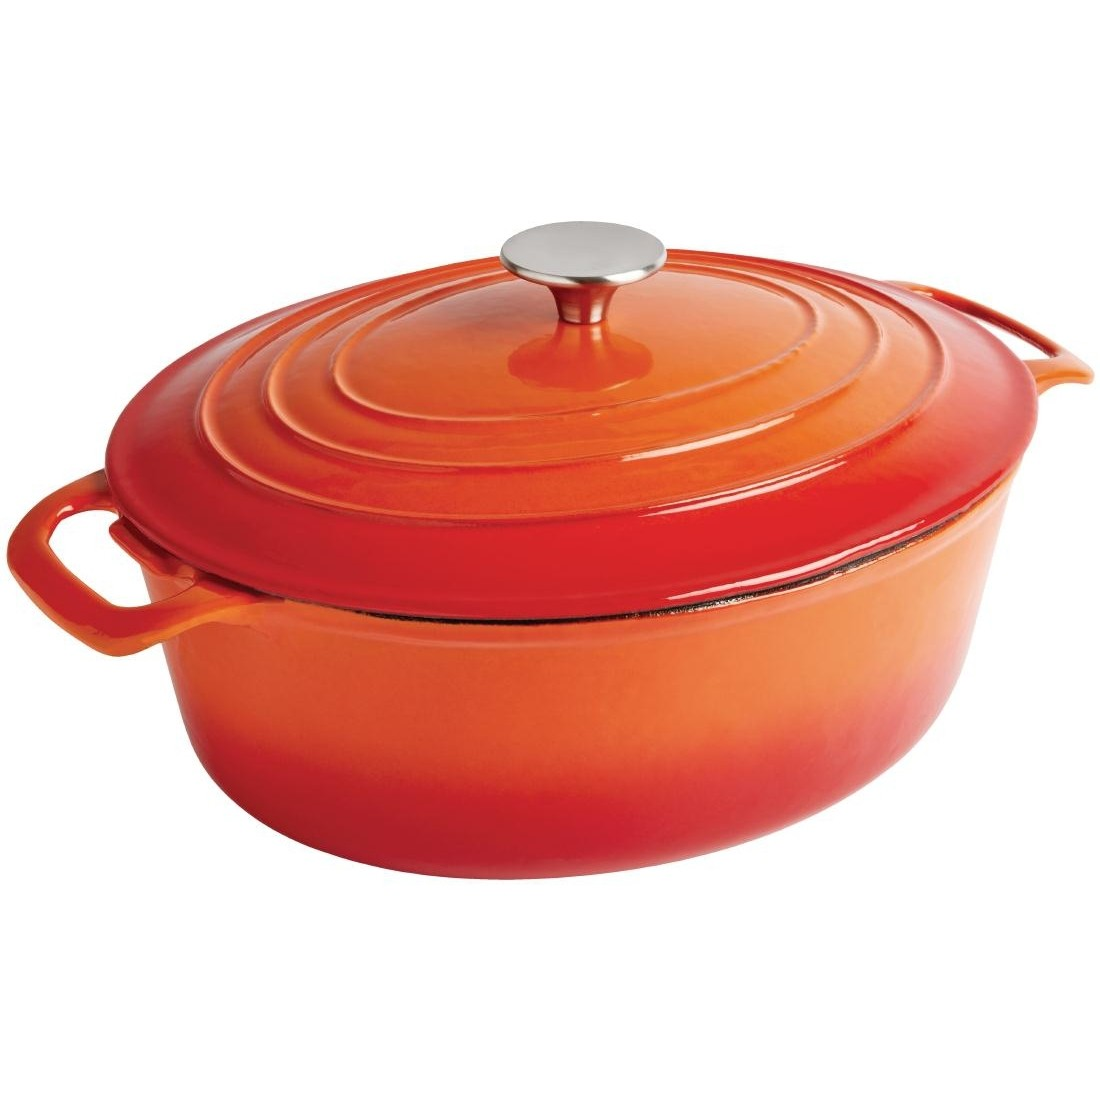 Vogue Orange Oval Casserole Dish 5Ltr